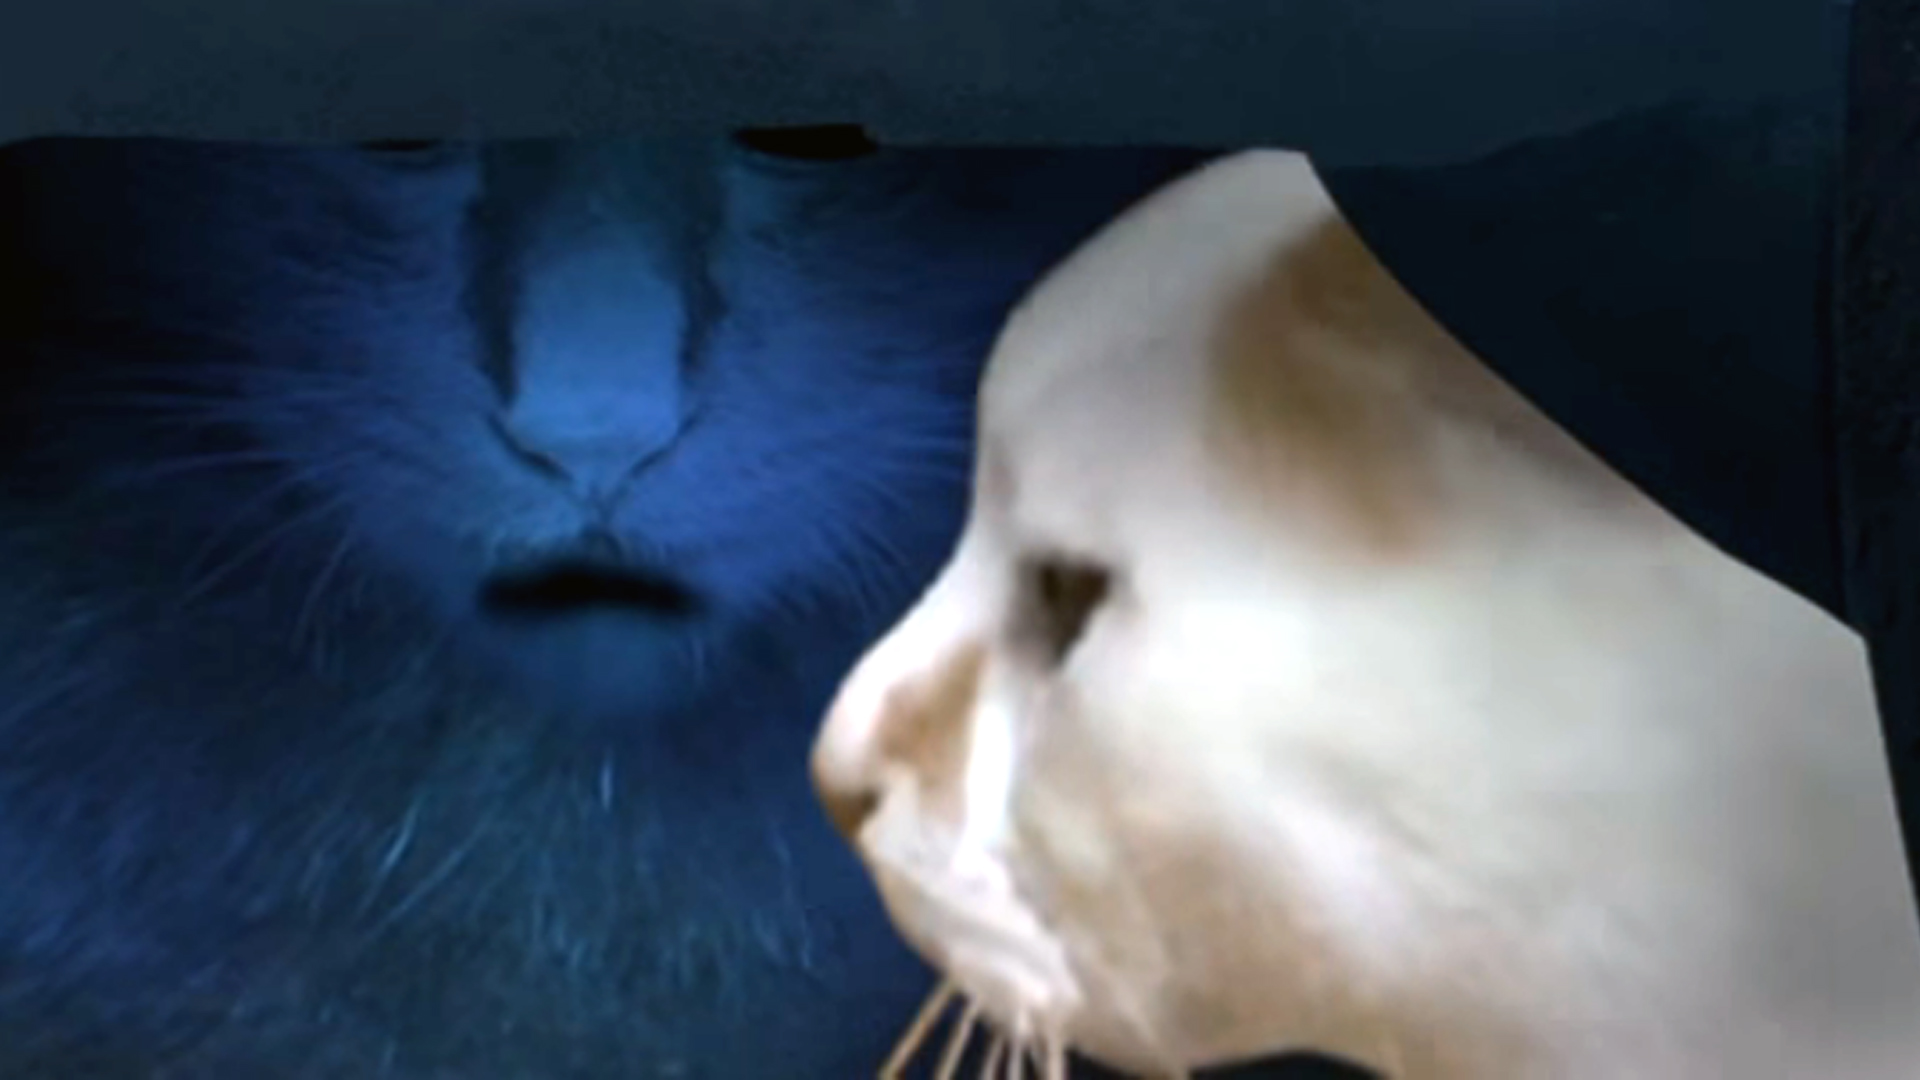 J-horror Tsugunohi features The Grudge for cats